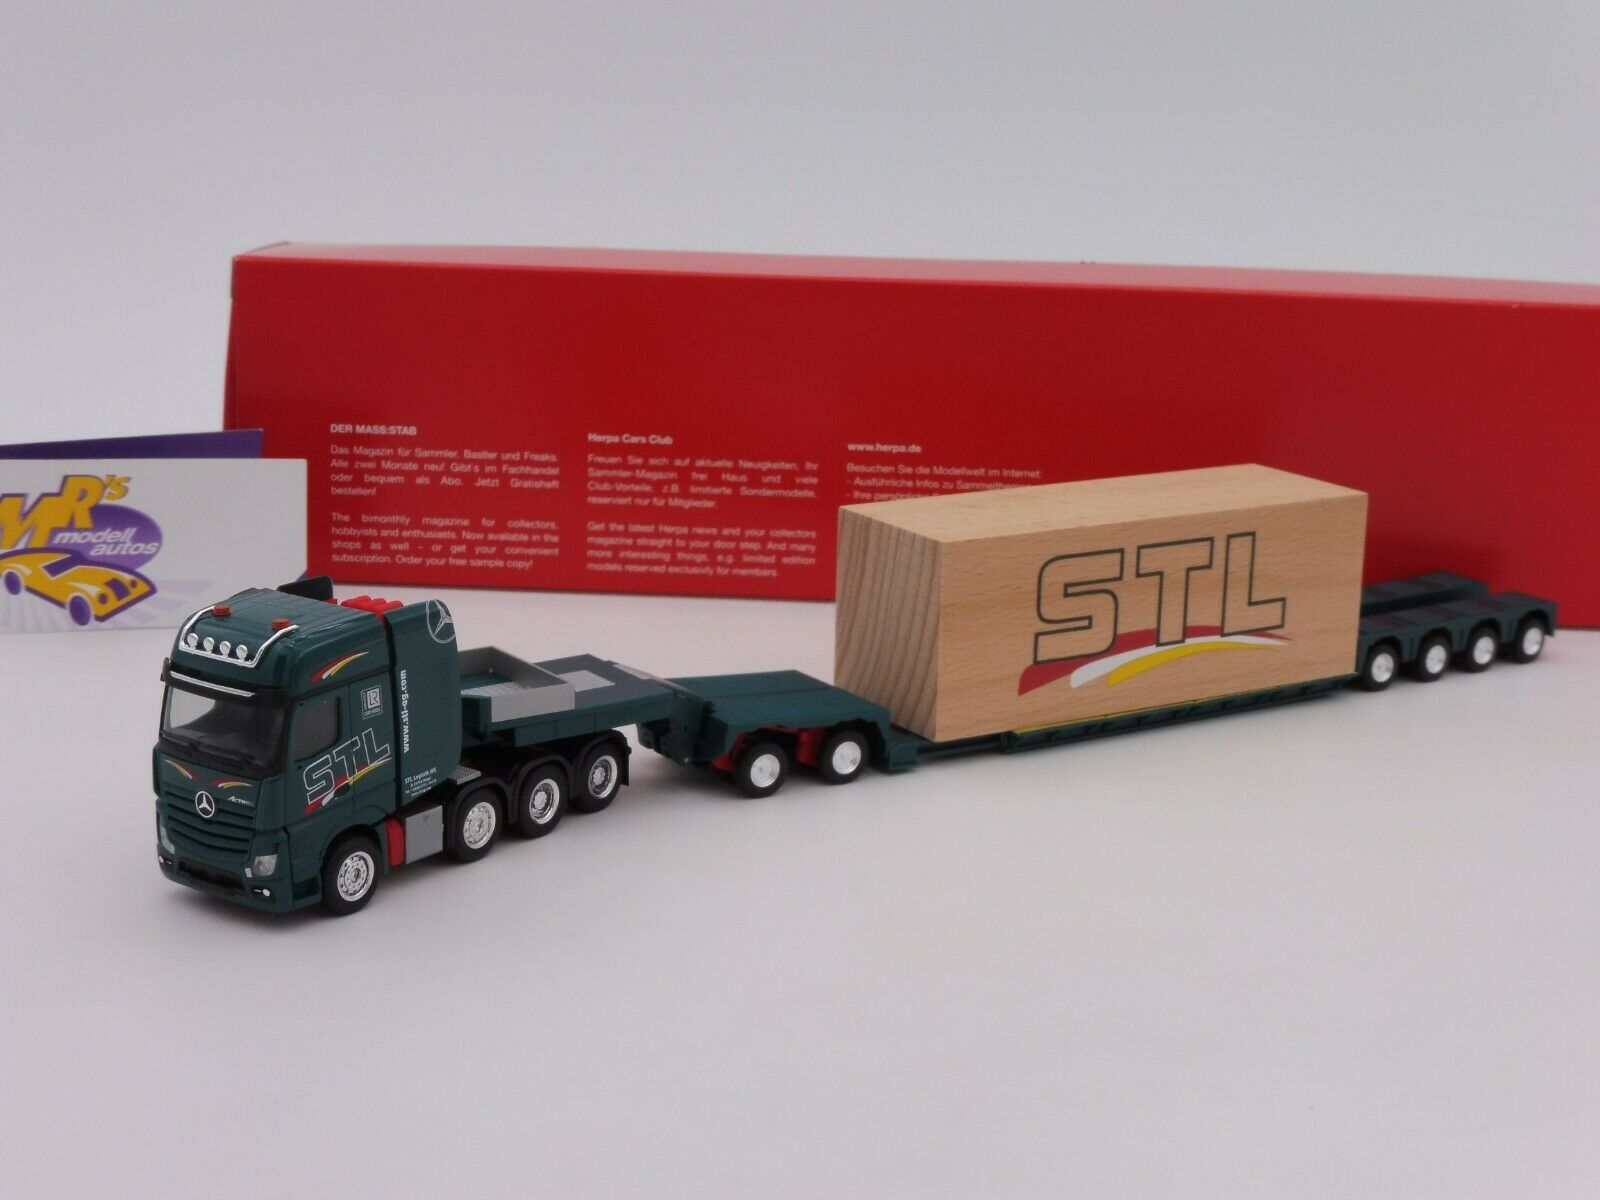 Herpa 310123   Mercedes  SLT Faible loading ARTICULATED LORRY WITH LOAD  STL Logistics  1 87  livraison gratuite